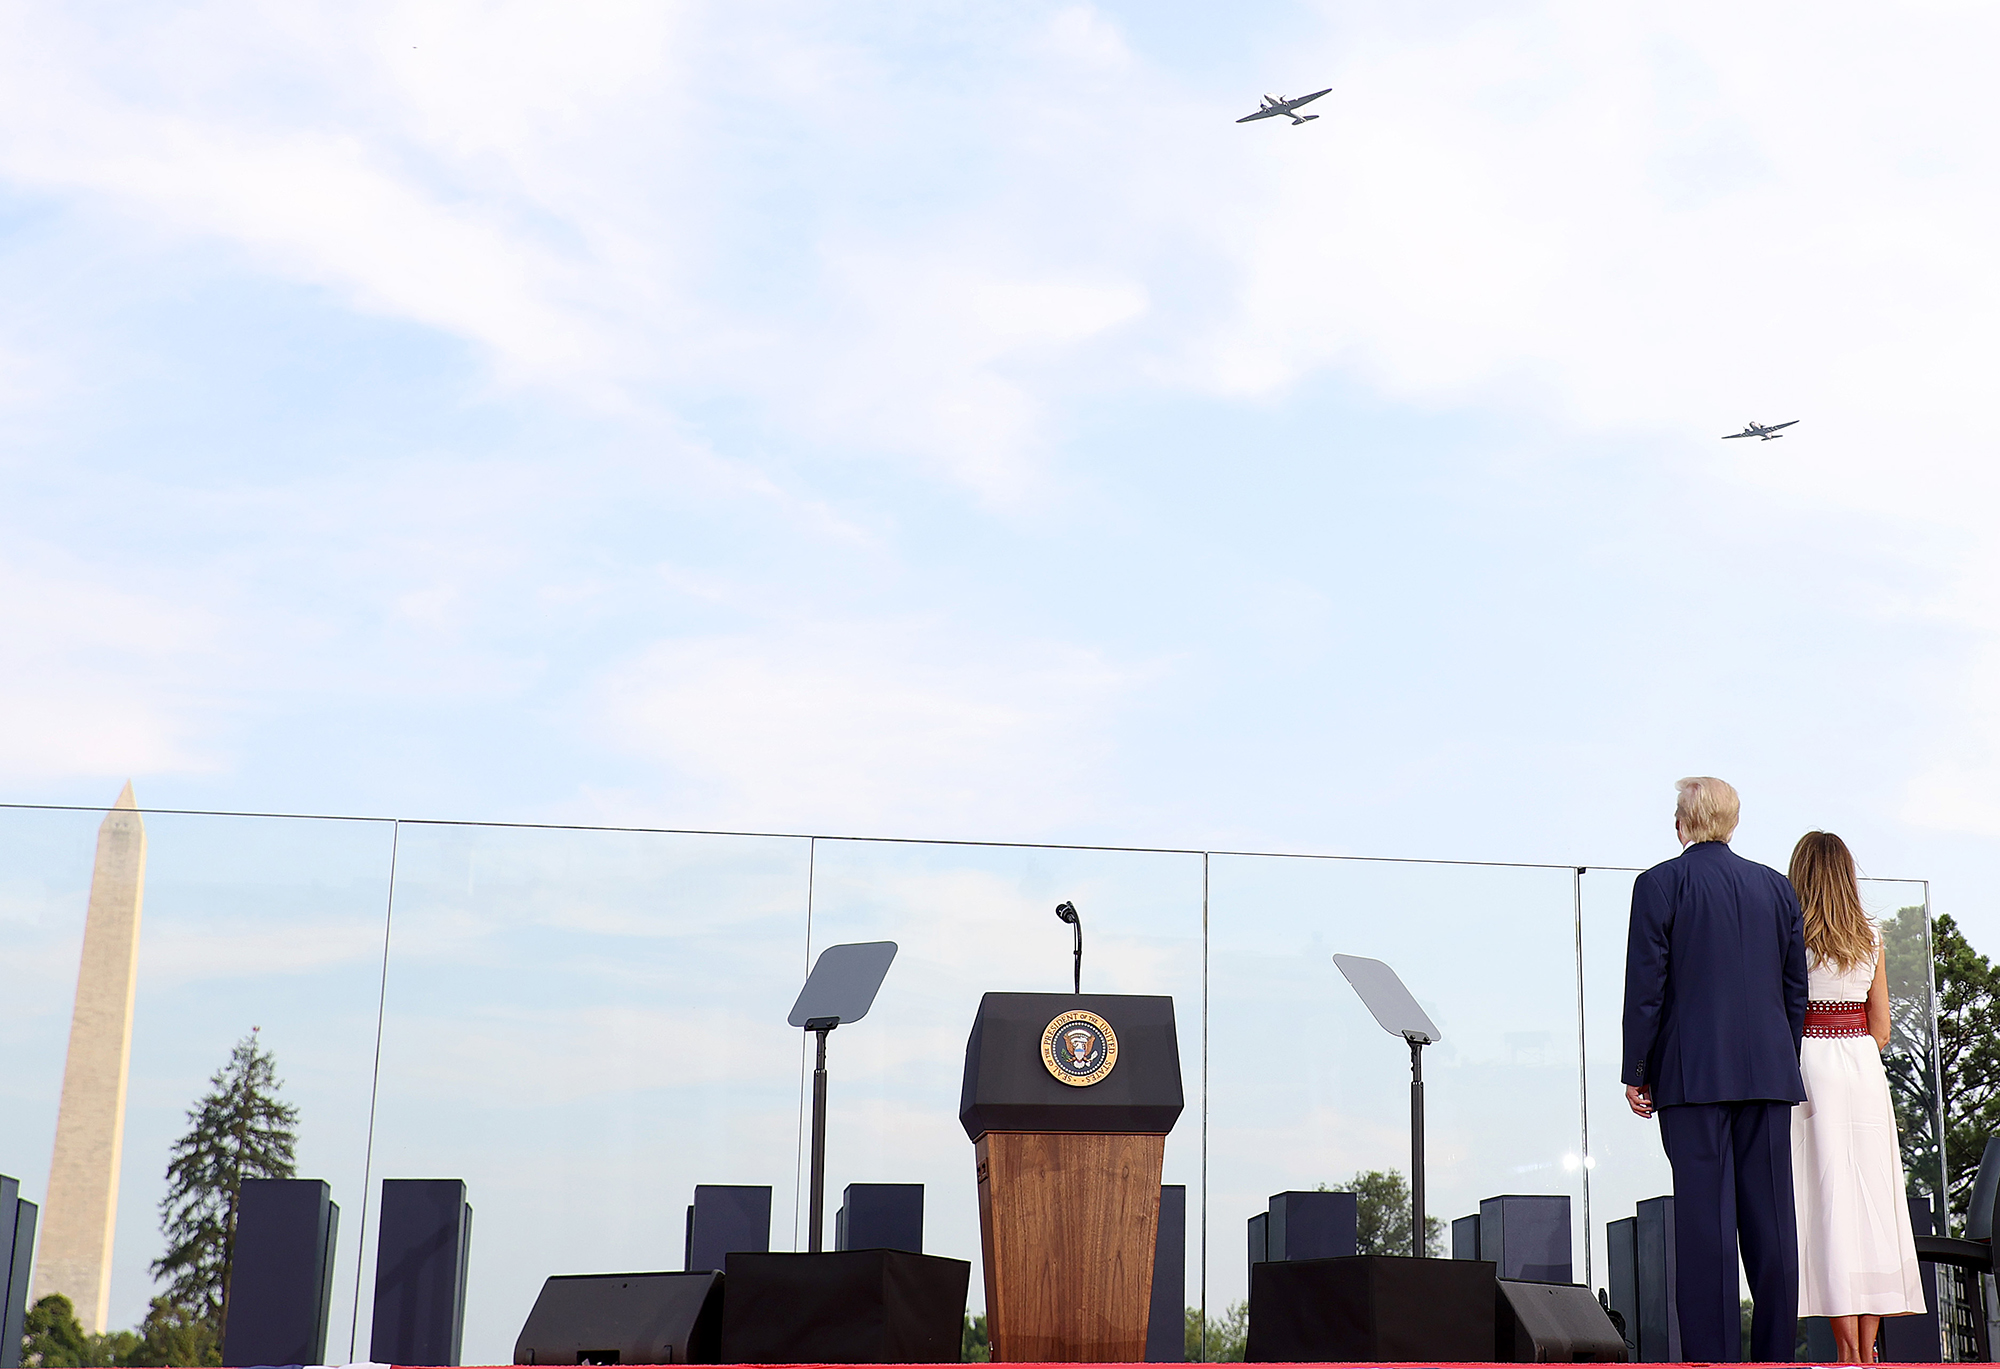 President Donald Trump and first lady Melania Trump watch a flyover performance near the White House on July 04, 2020 in Washington, DC.